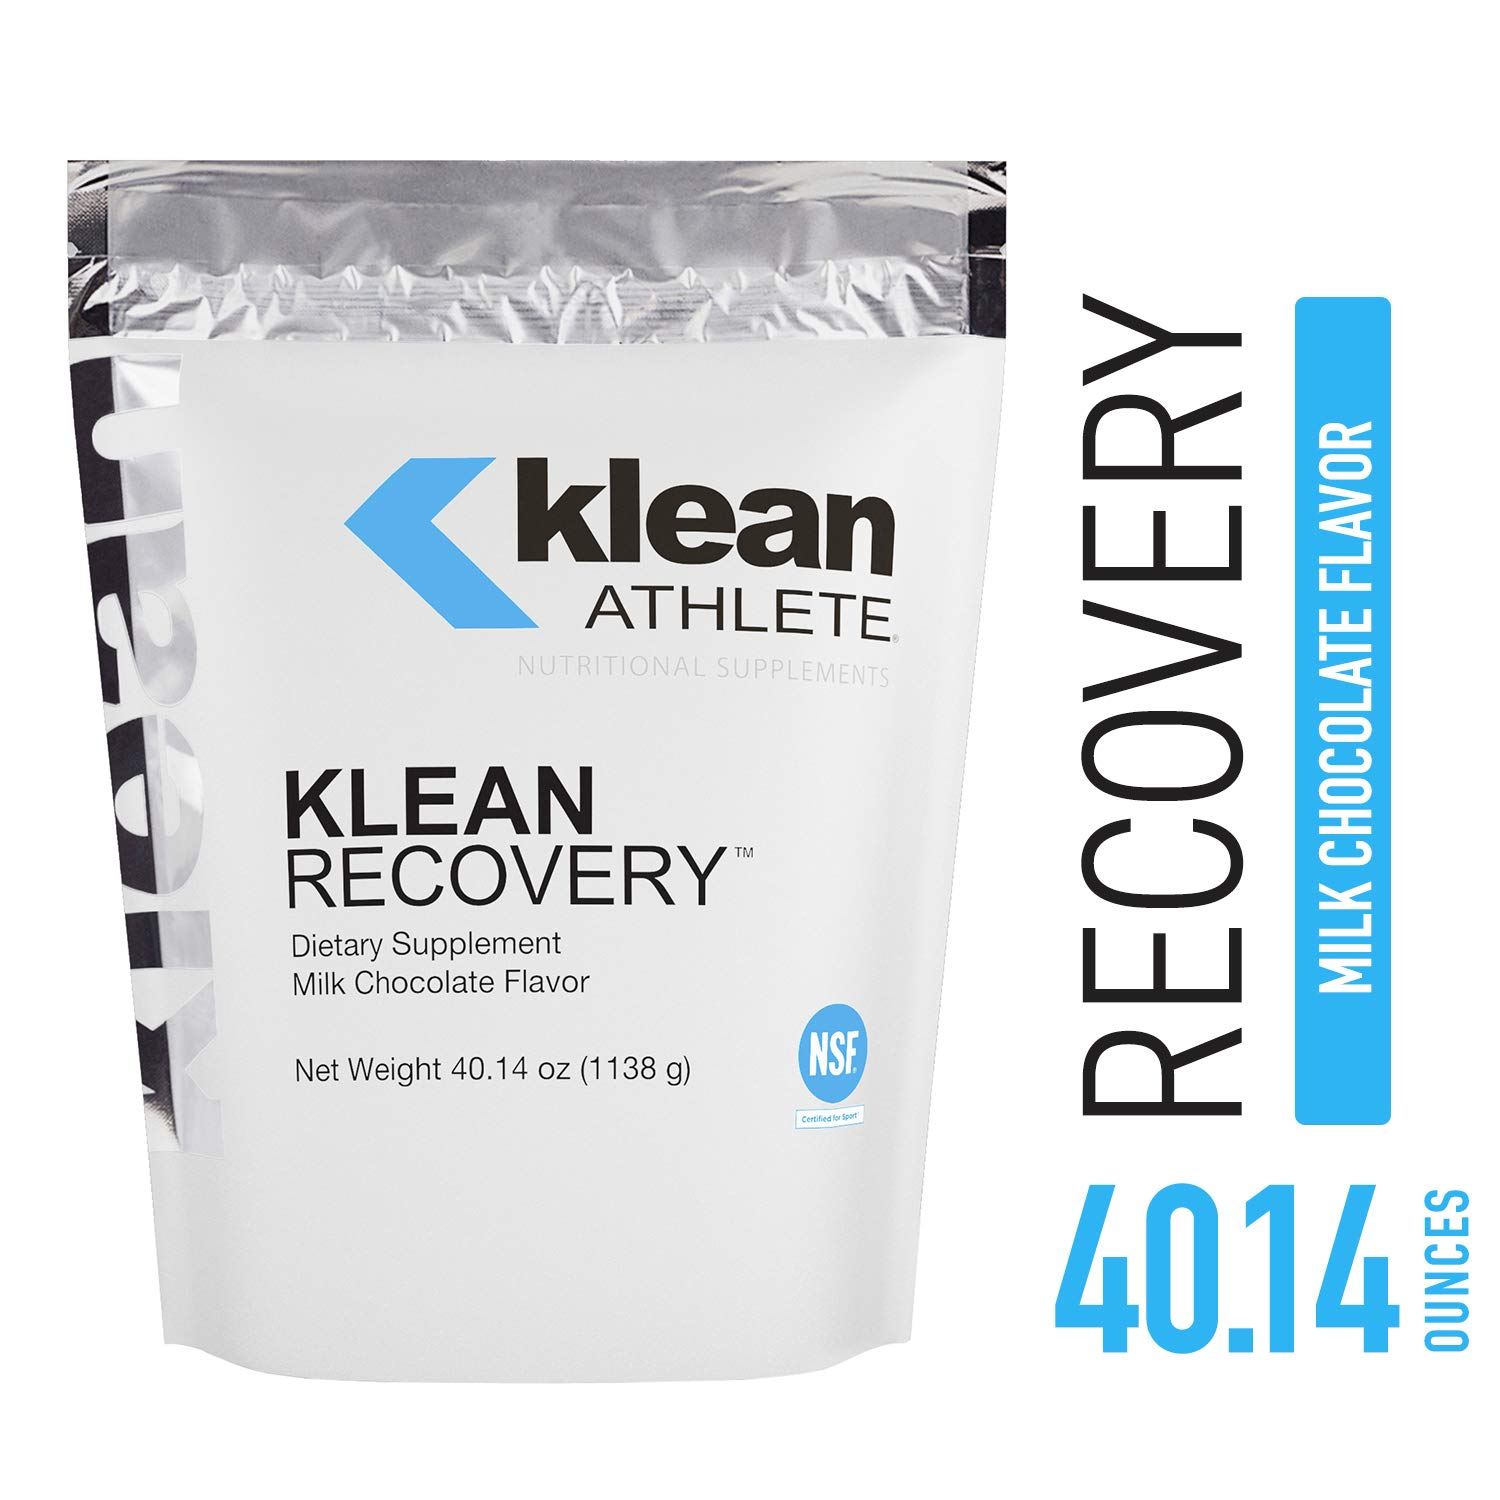 Klean Athlete - Klean Recovery - Optimizes Muscle Recovery After Exercise - NSF Certified for Sport - Milk Chocolate Flavor - 40.14 oz (1138 g)